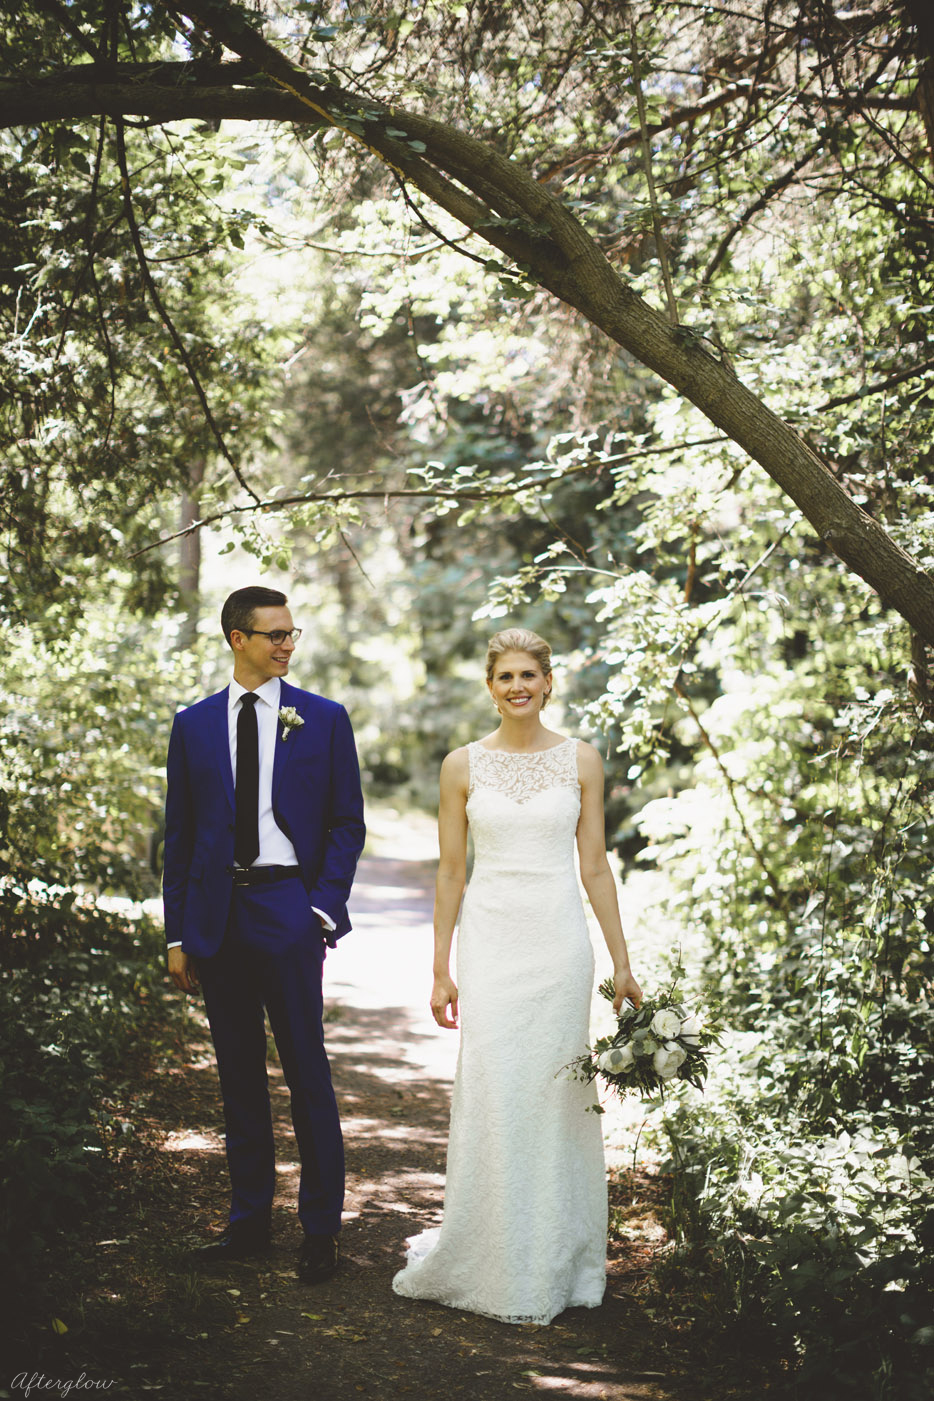 024-bride-and-groom-in-forest-niagara.jpg